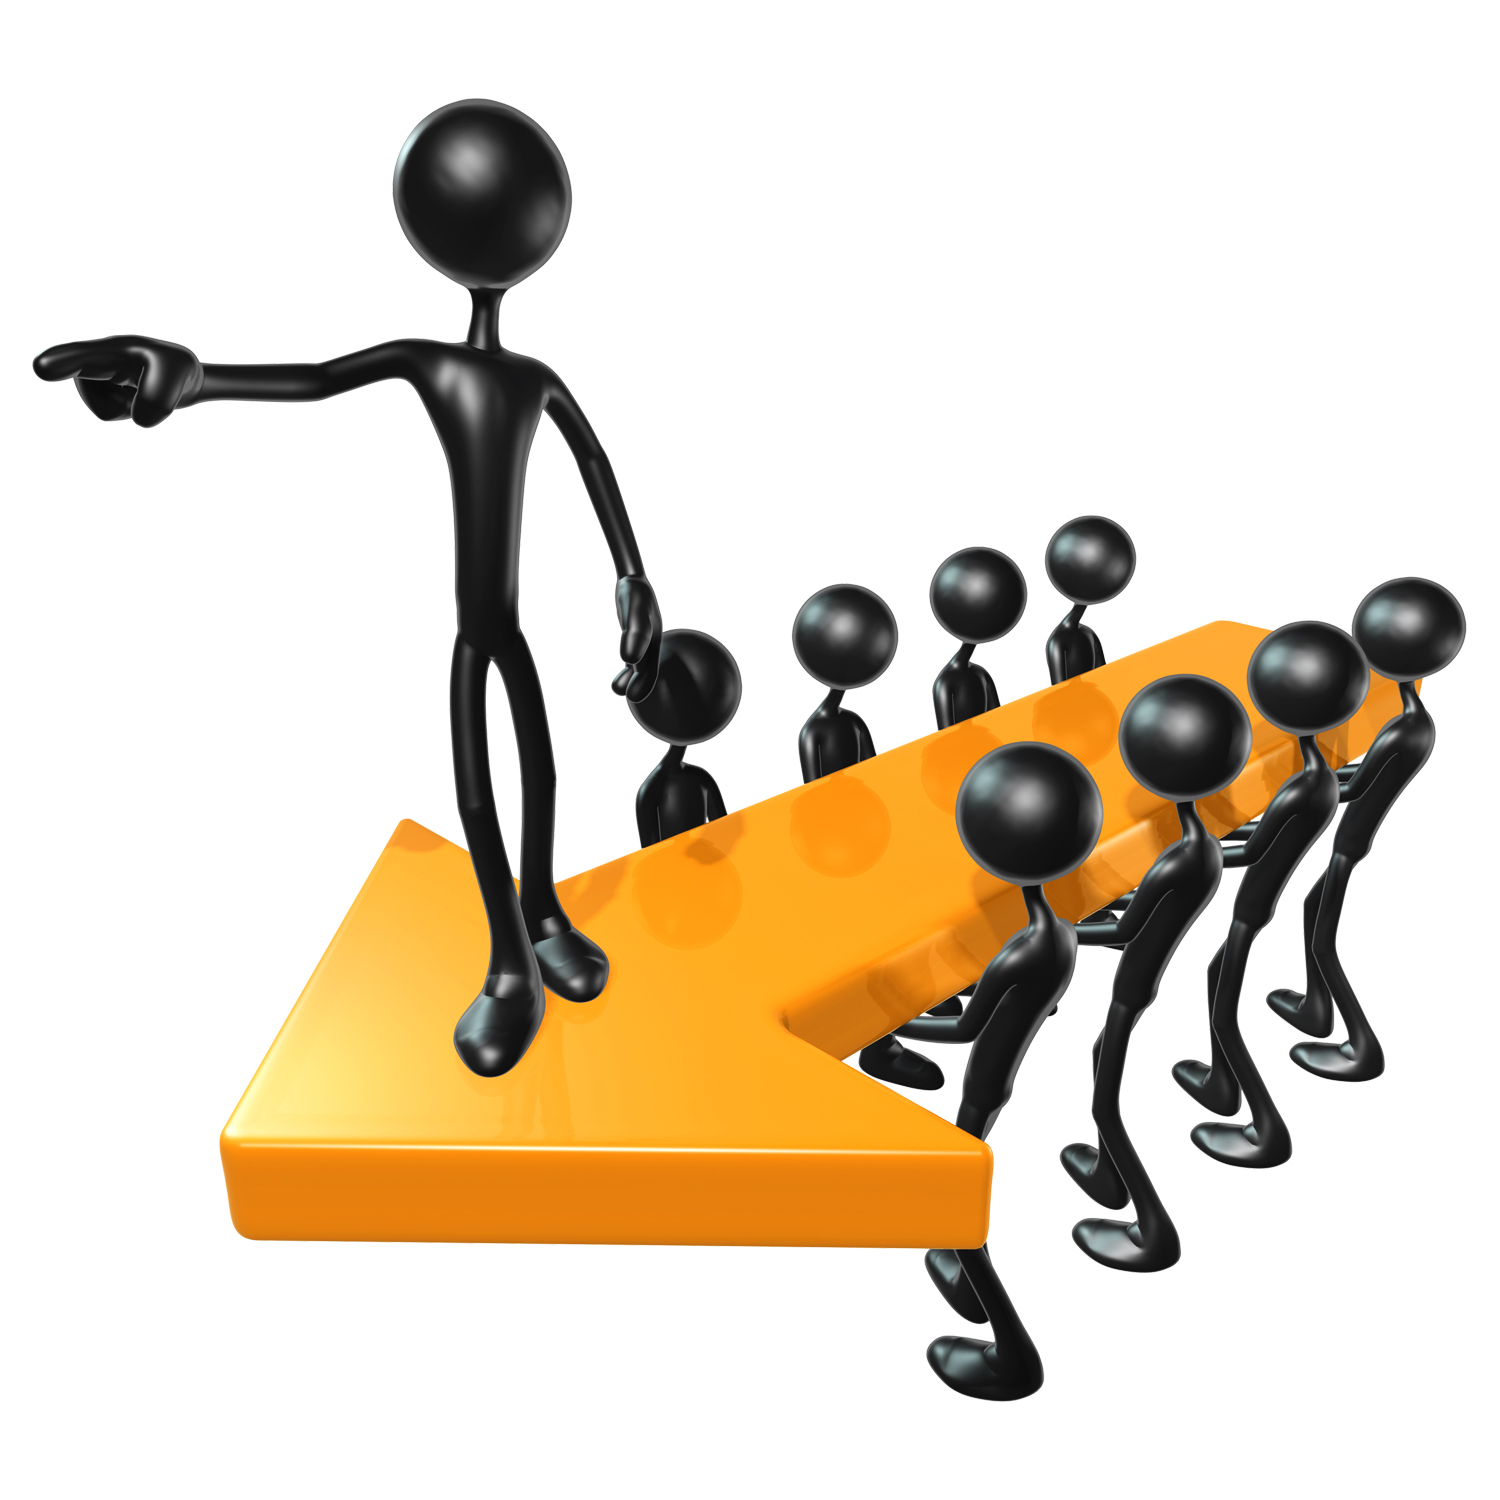 Inspirational clipart teamwork Aspects effective of One create